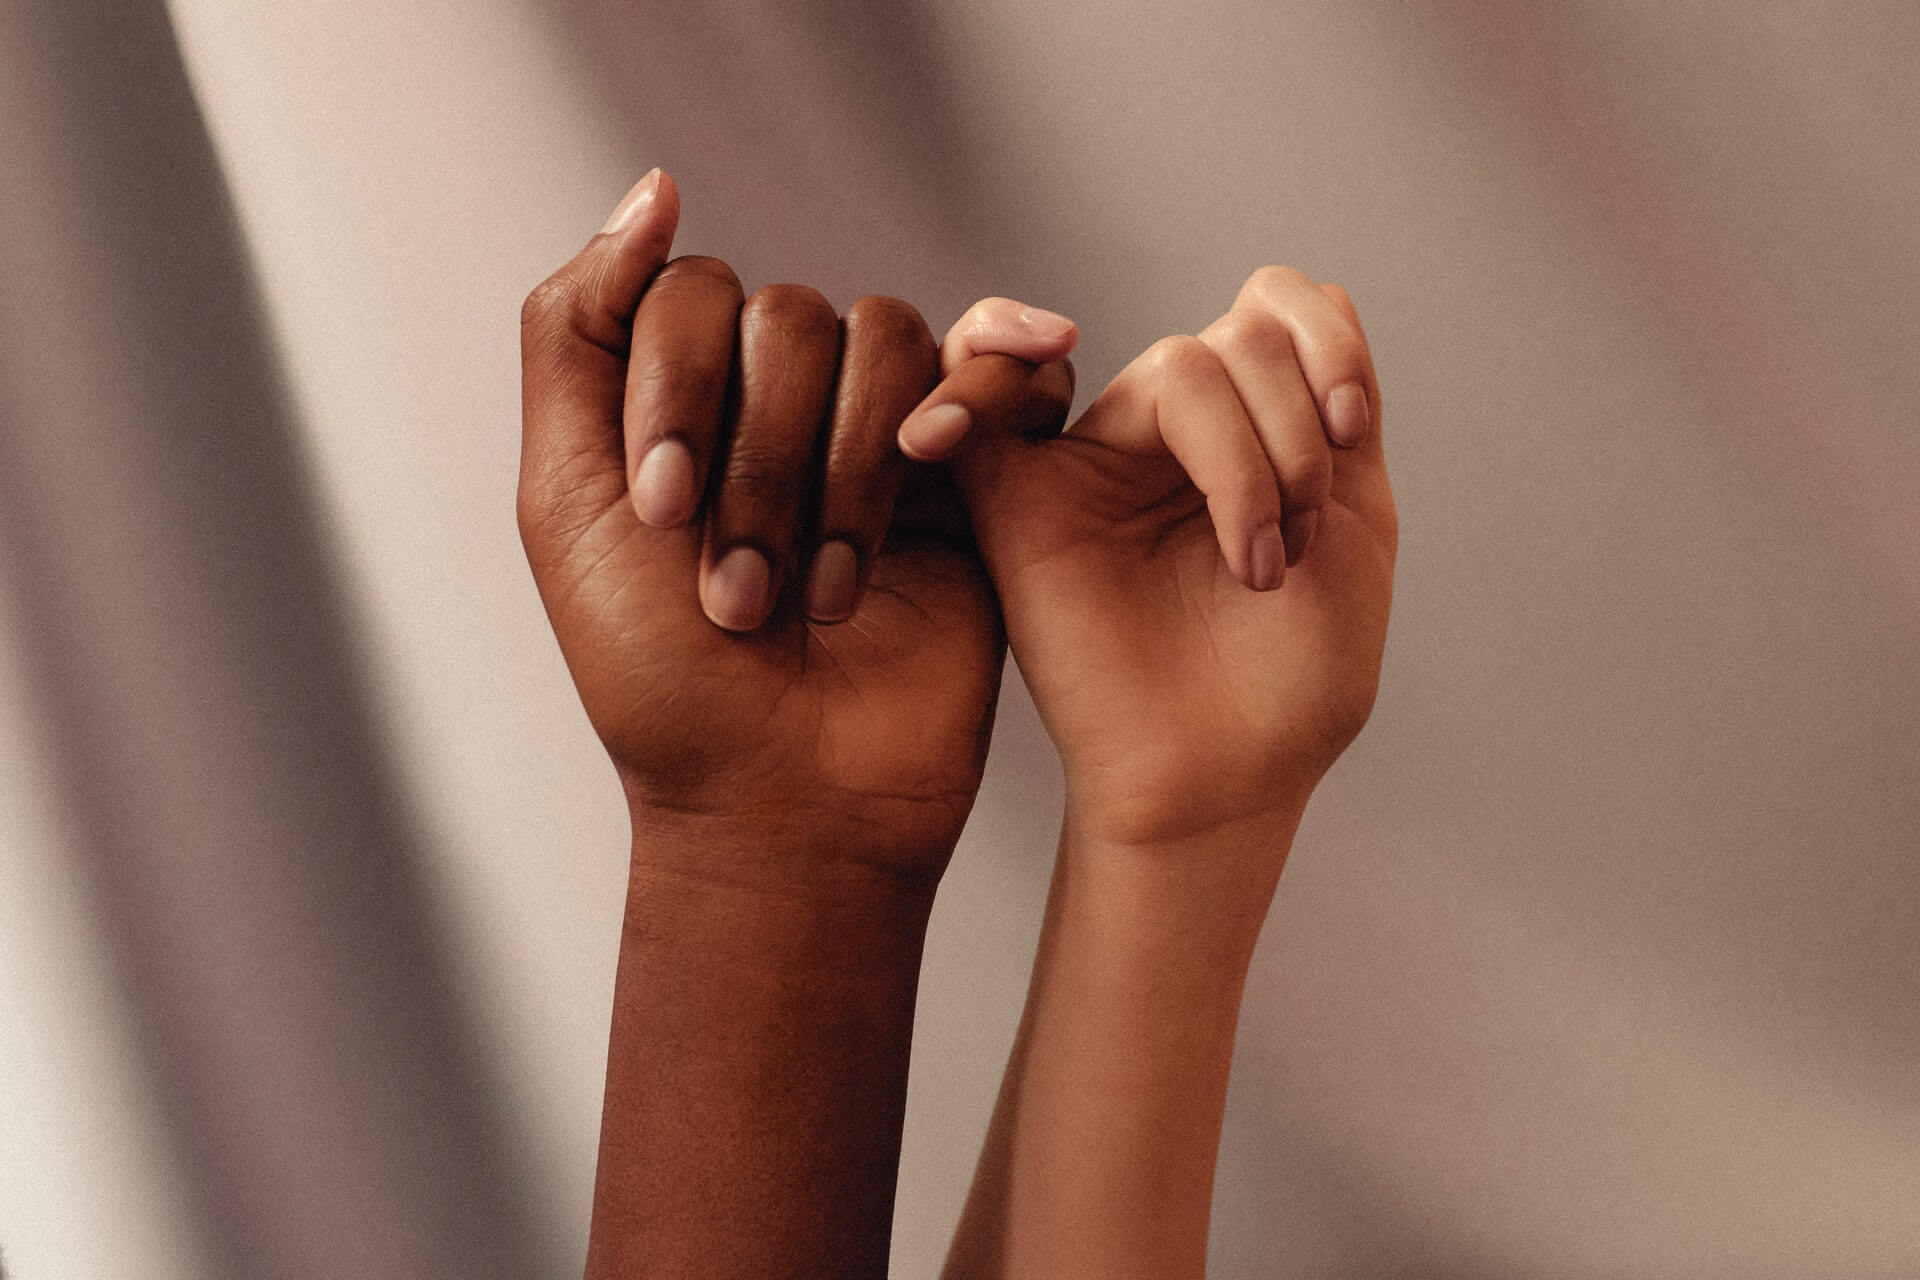 Two women doing pinky promises